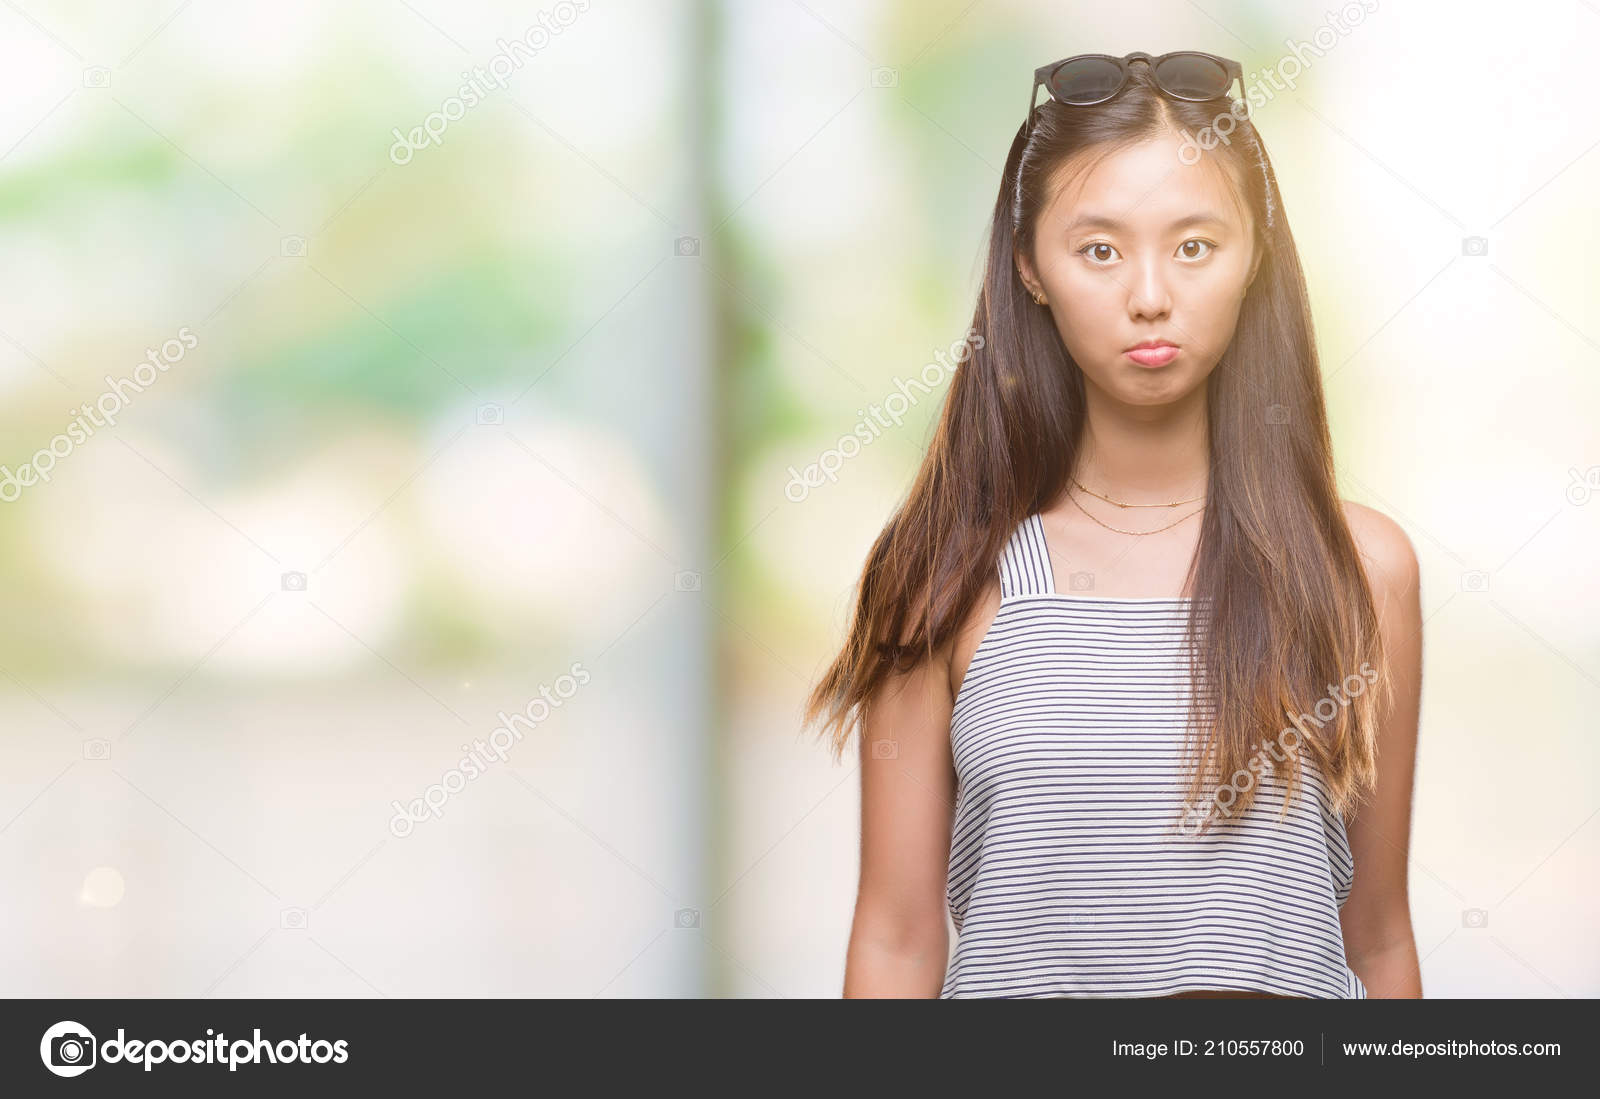 young asian woman wearing sunglasses isolated background depressed